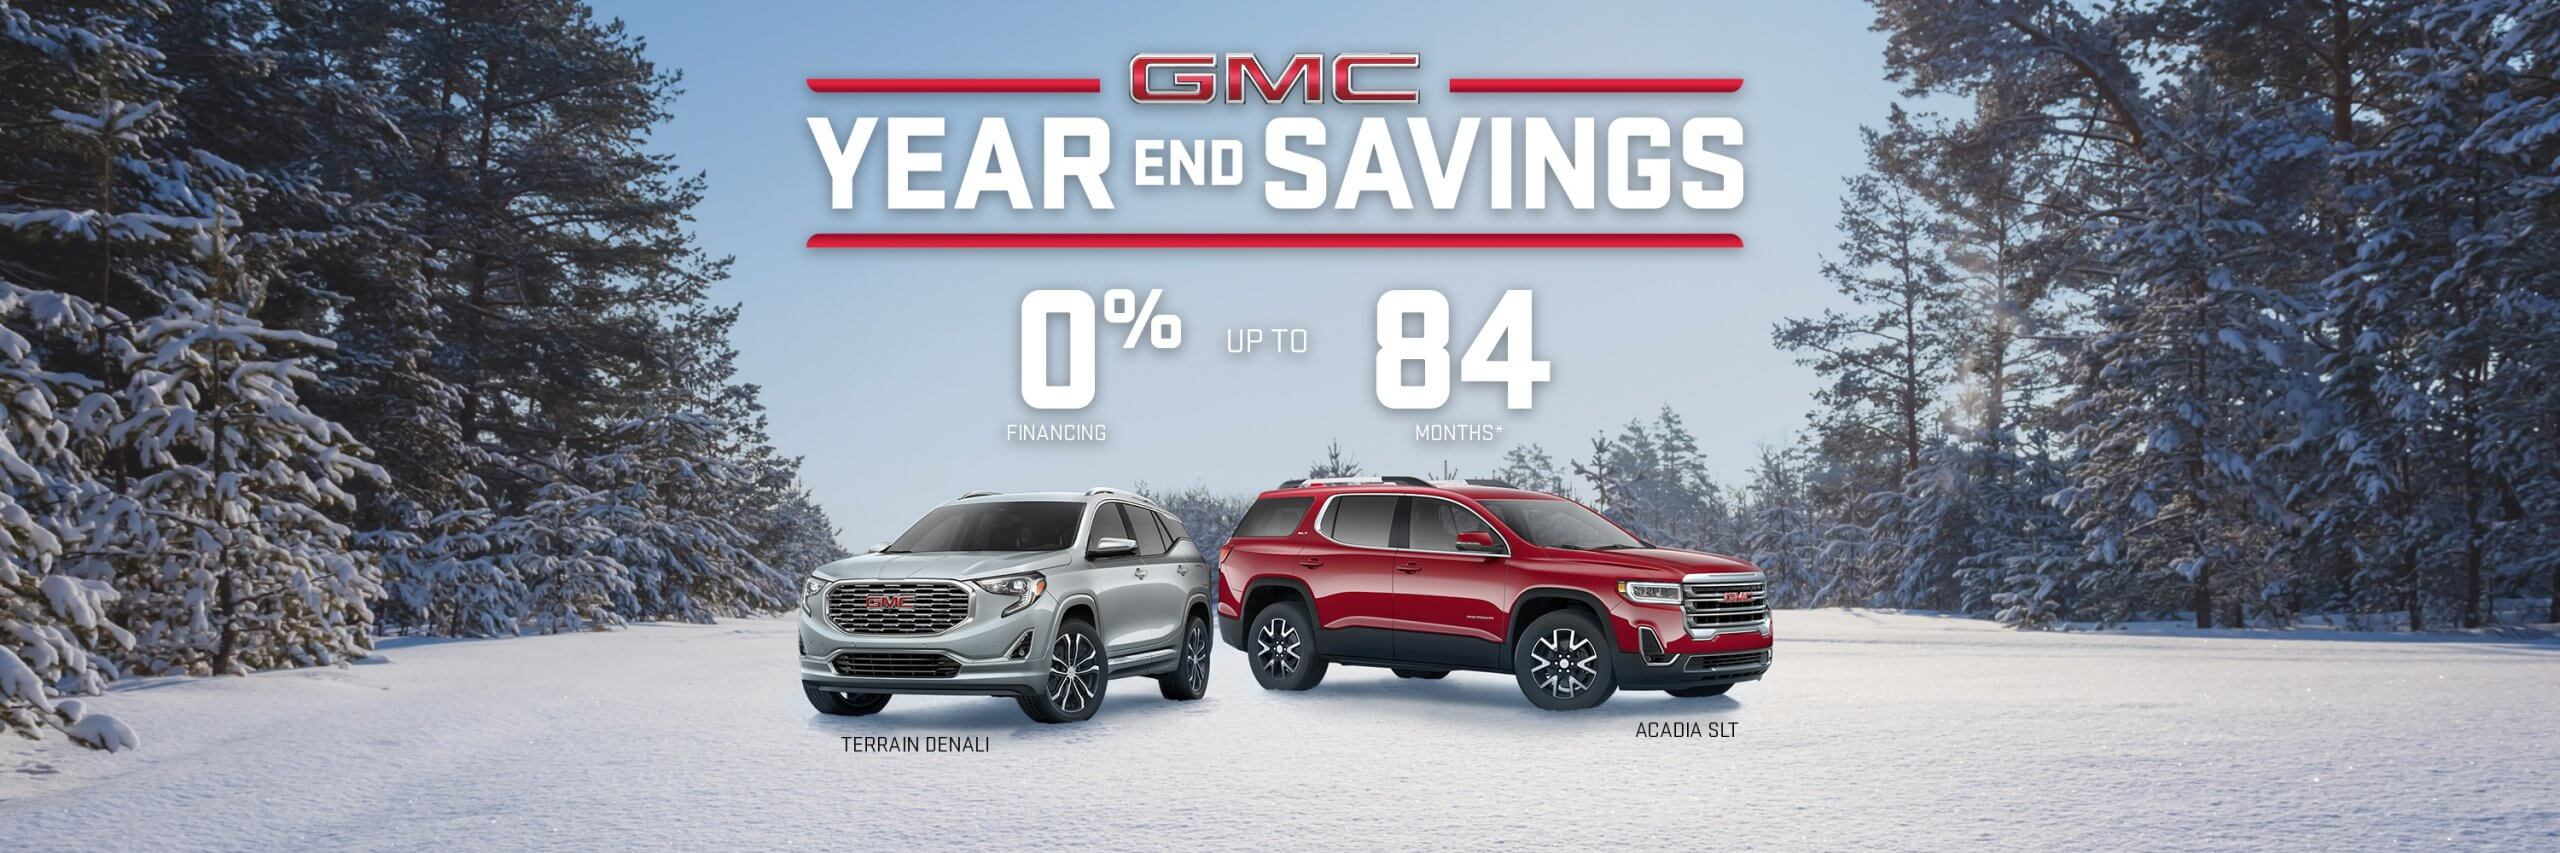 GMC Year End Savings SUVs